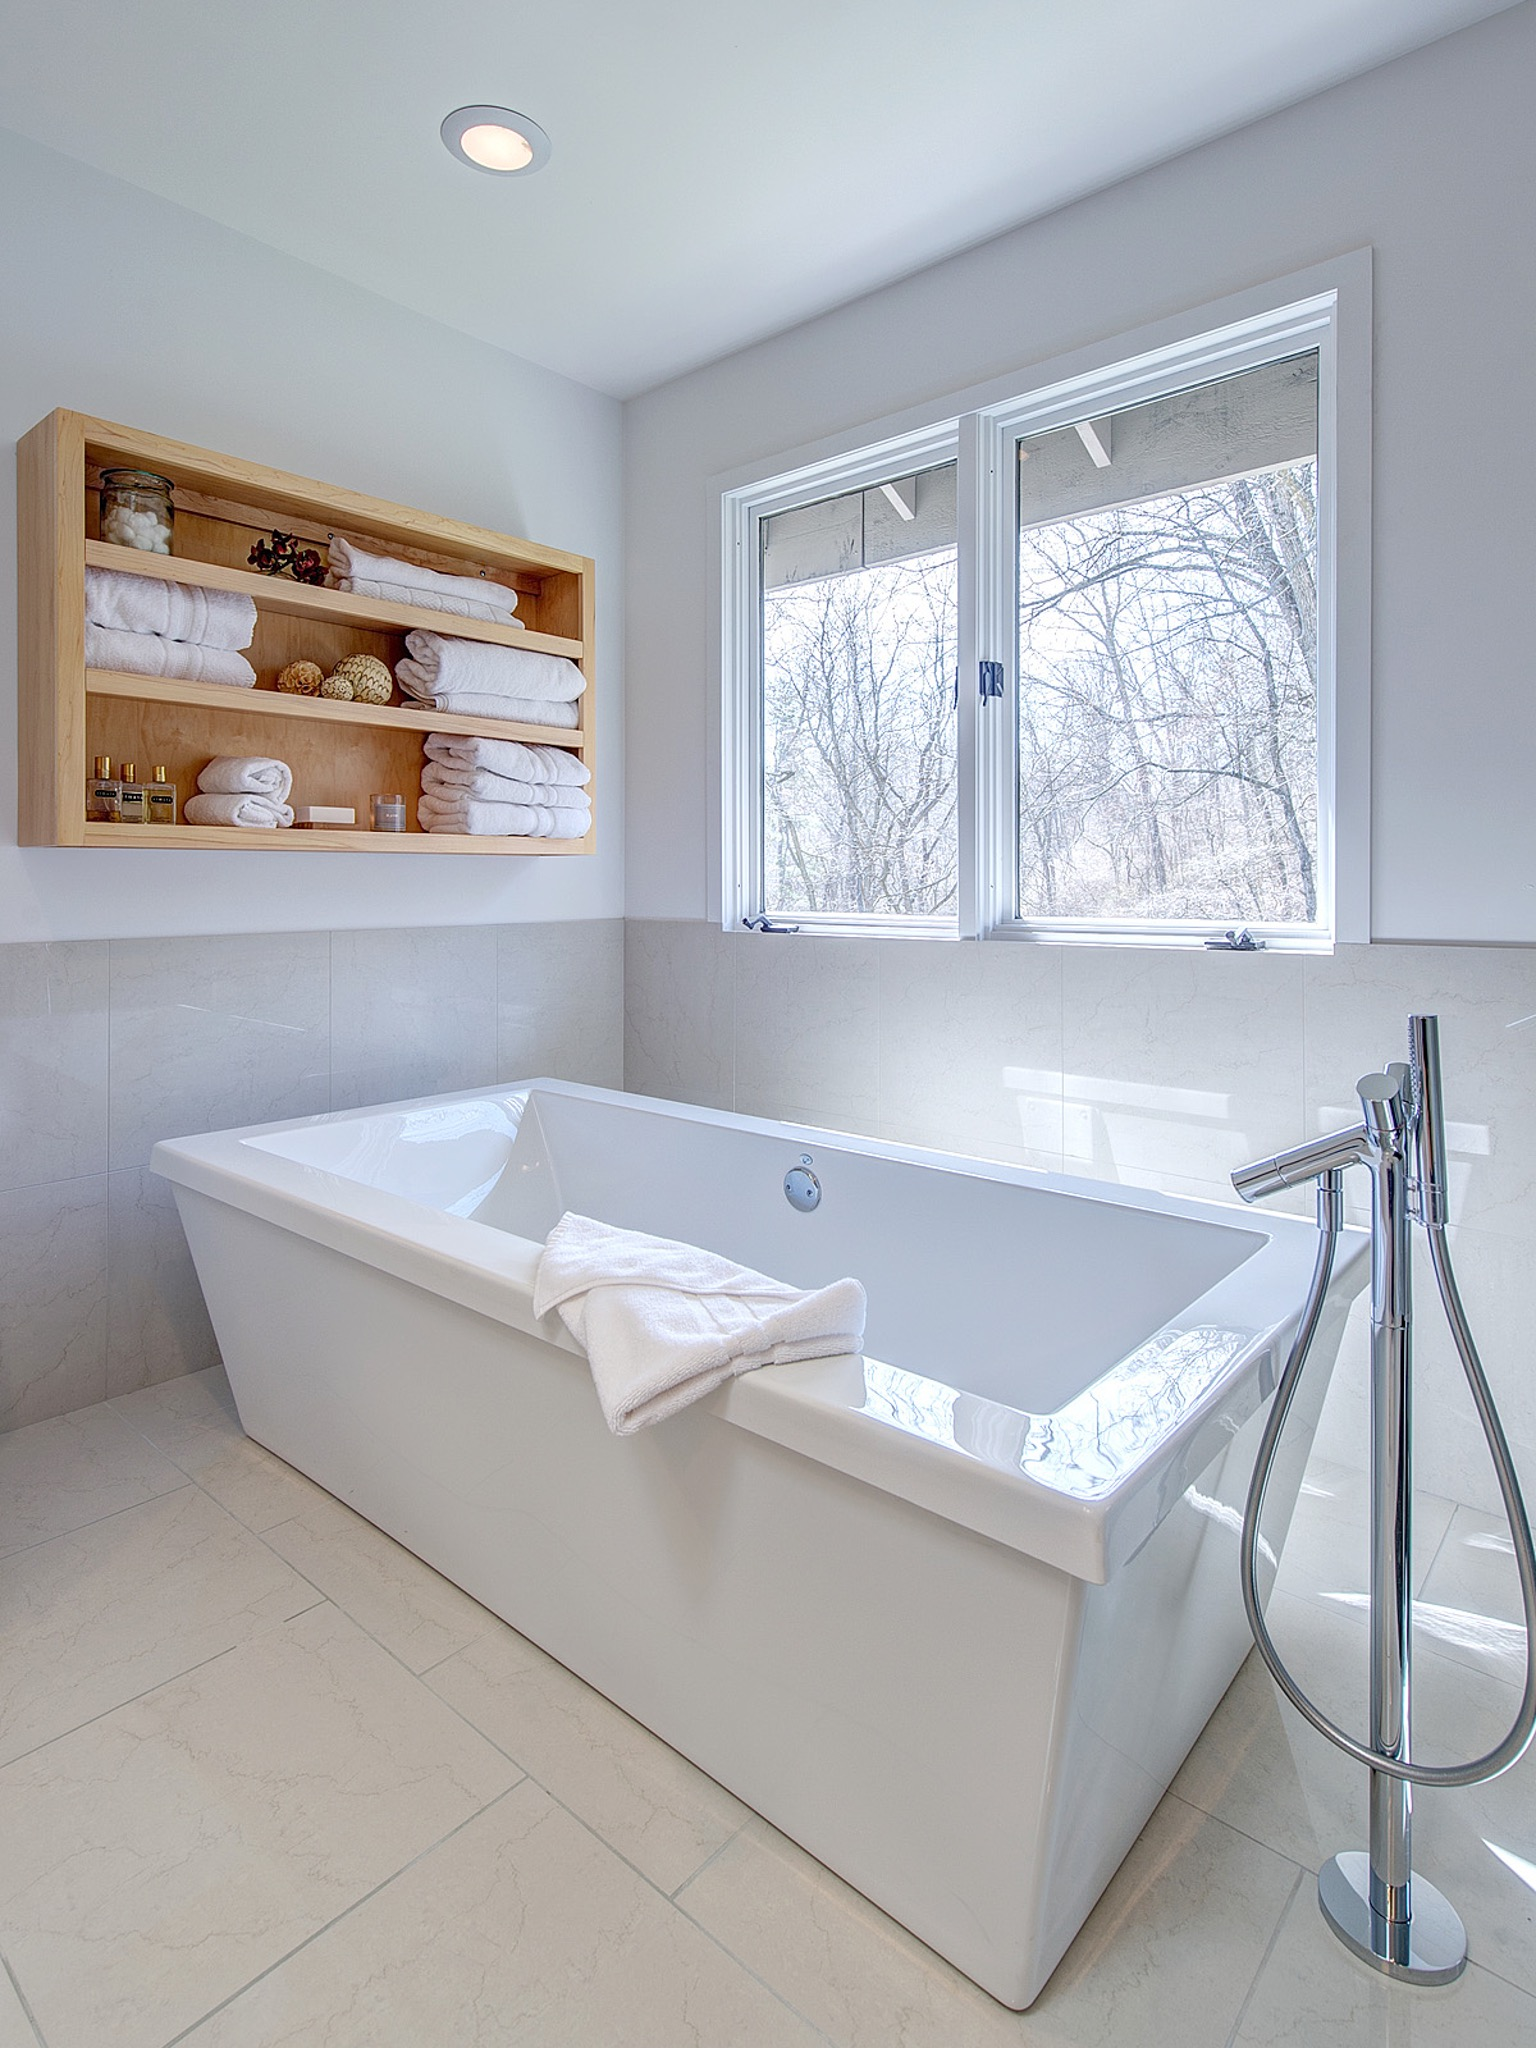 Freestanding Tub And Shower Combo In Contemporary White Bathroom (Image 9 of 19)